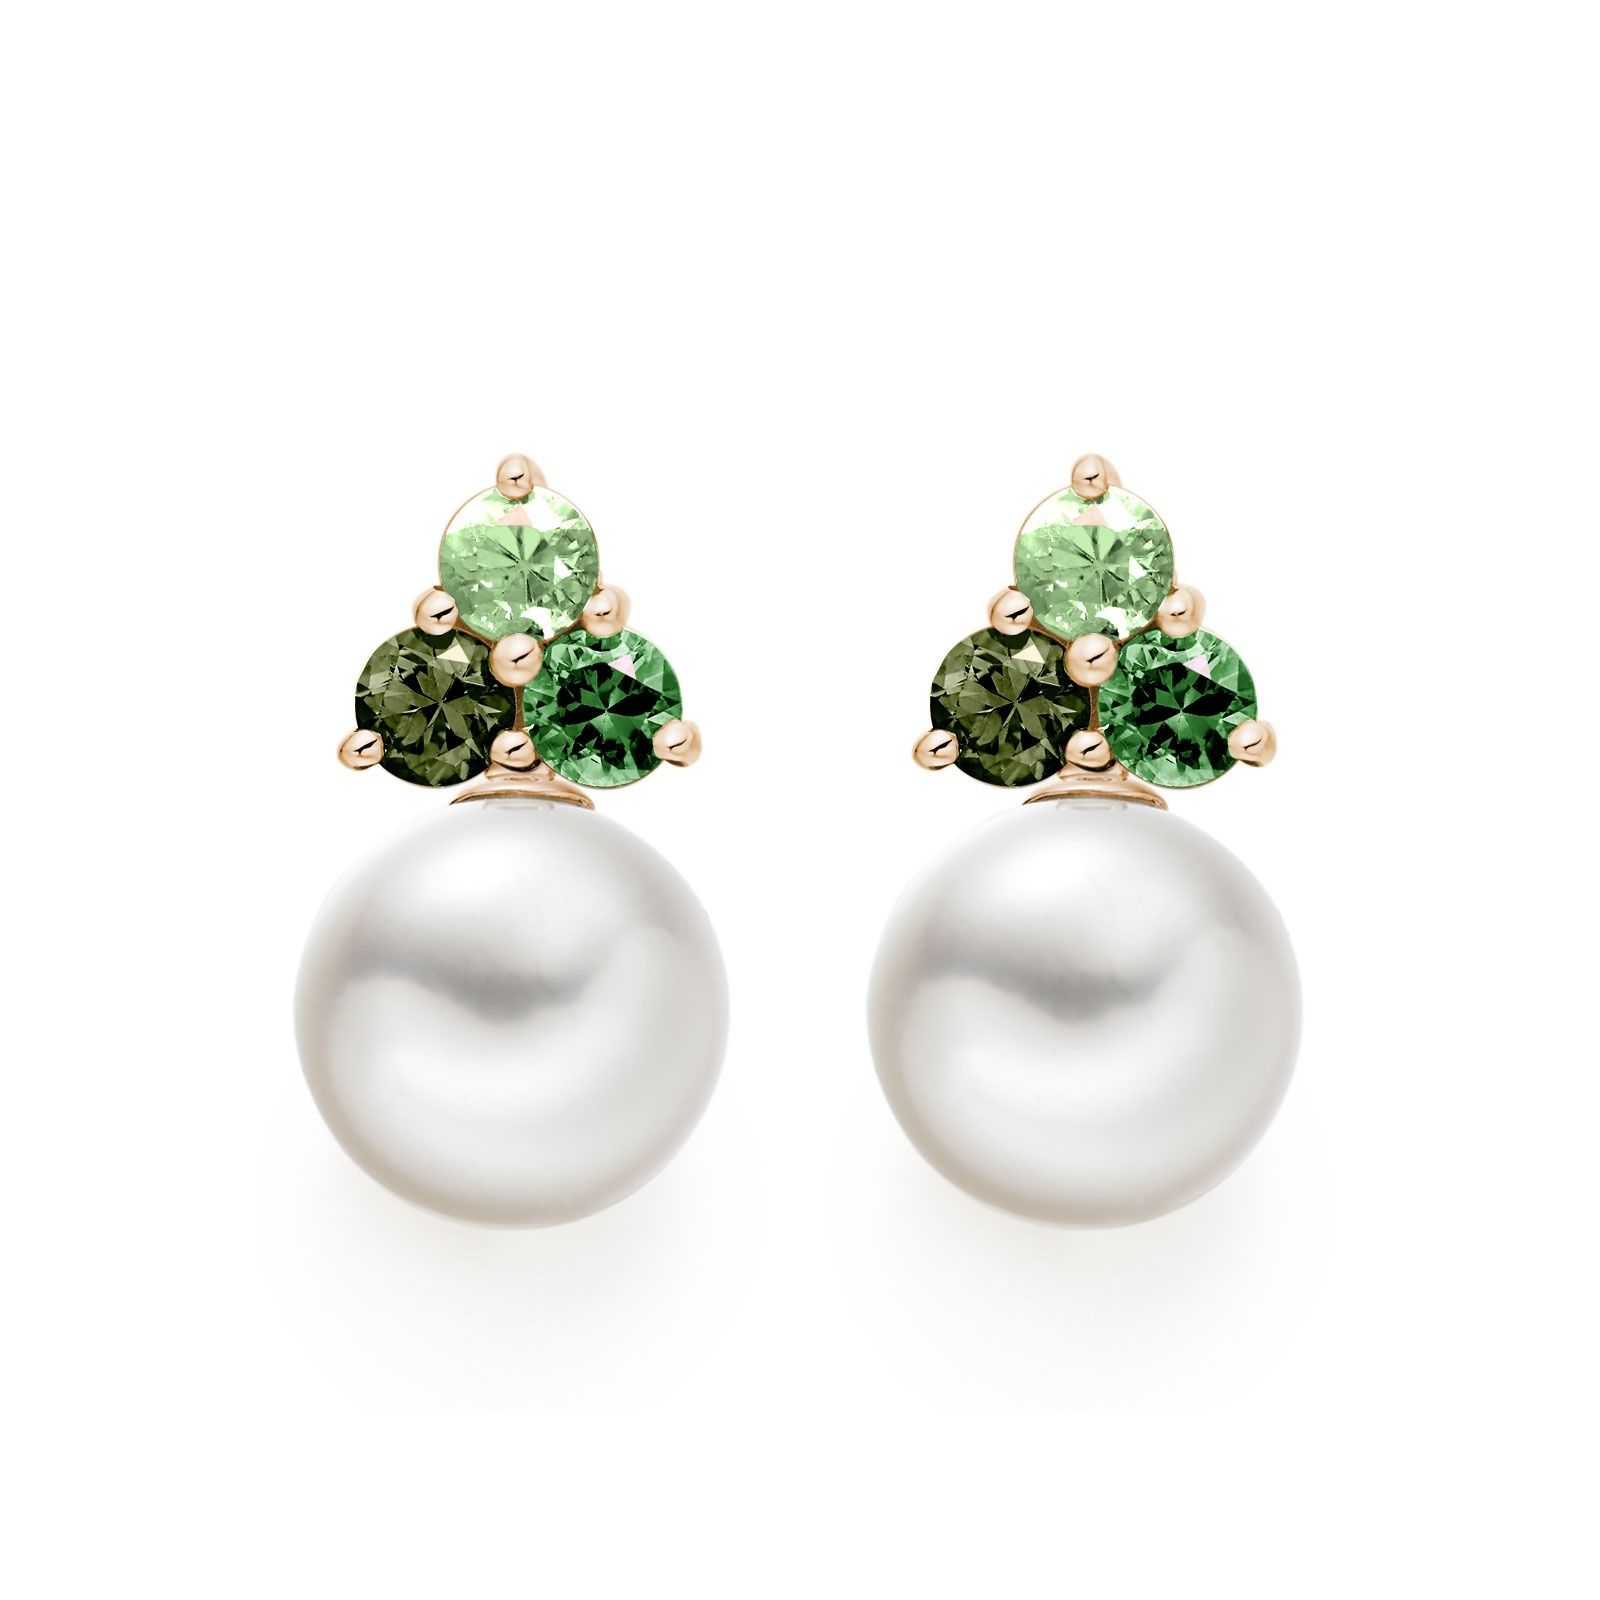 Astral Aurora Studs in Rose Gold with Akoya Pearls-AEWRRG1342-1